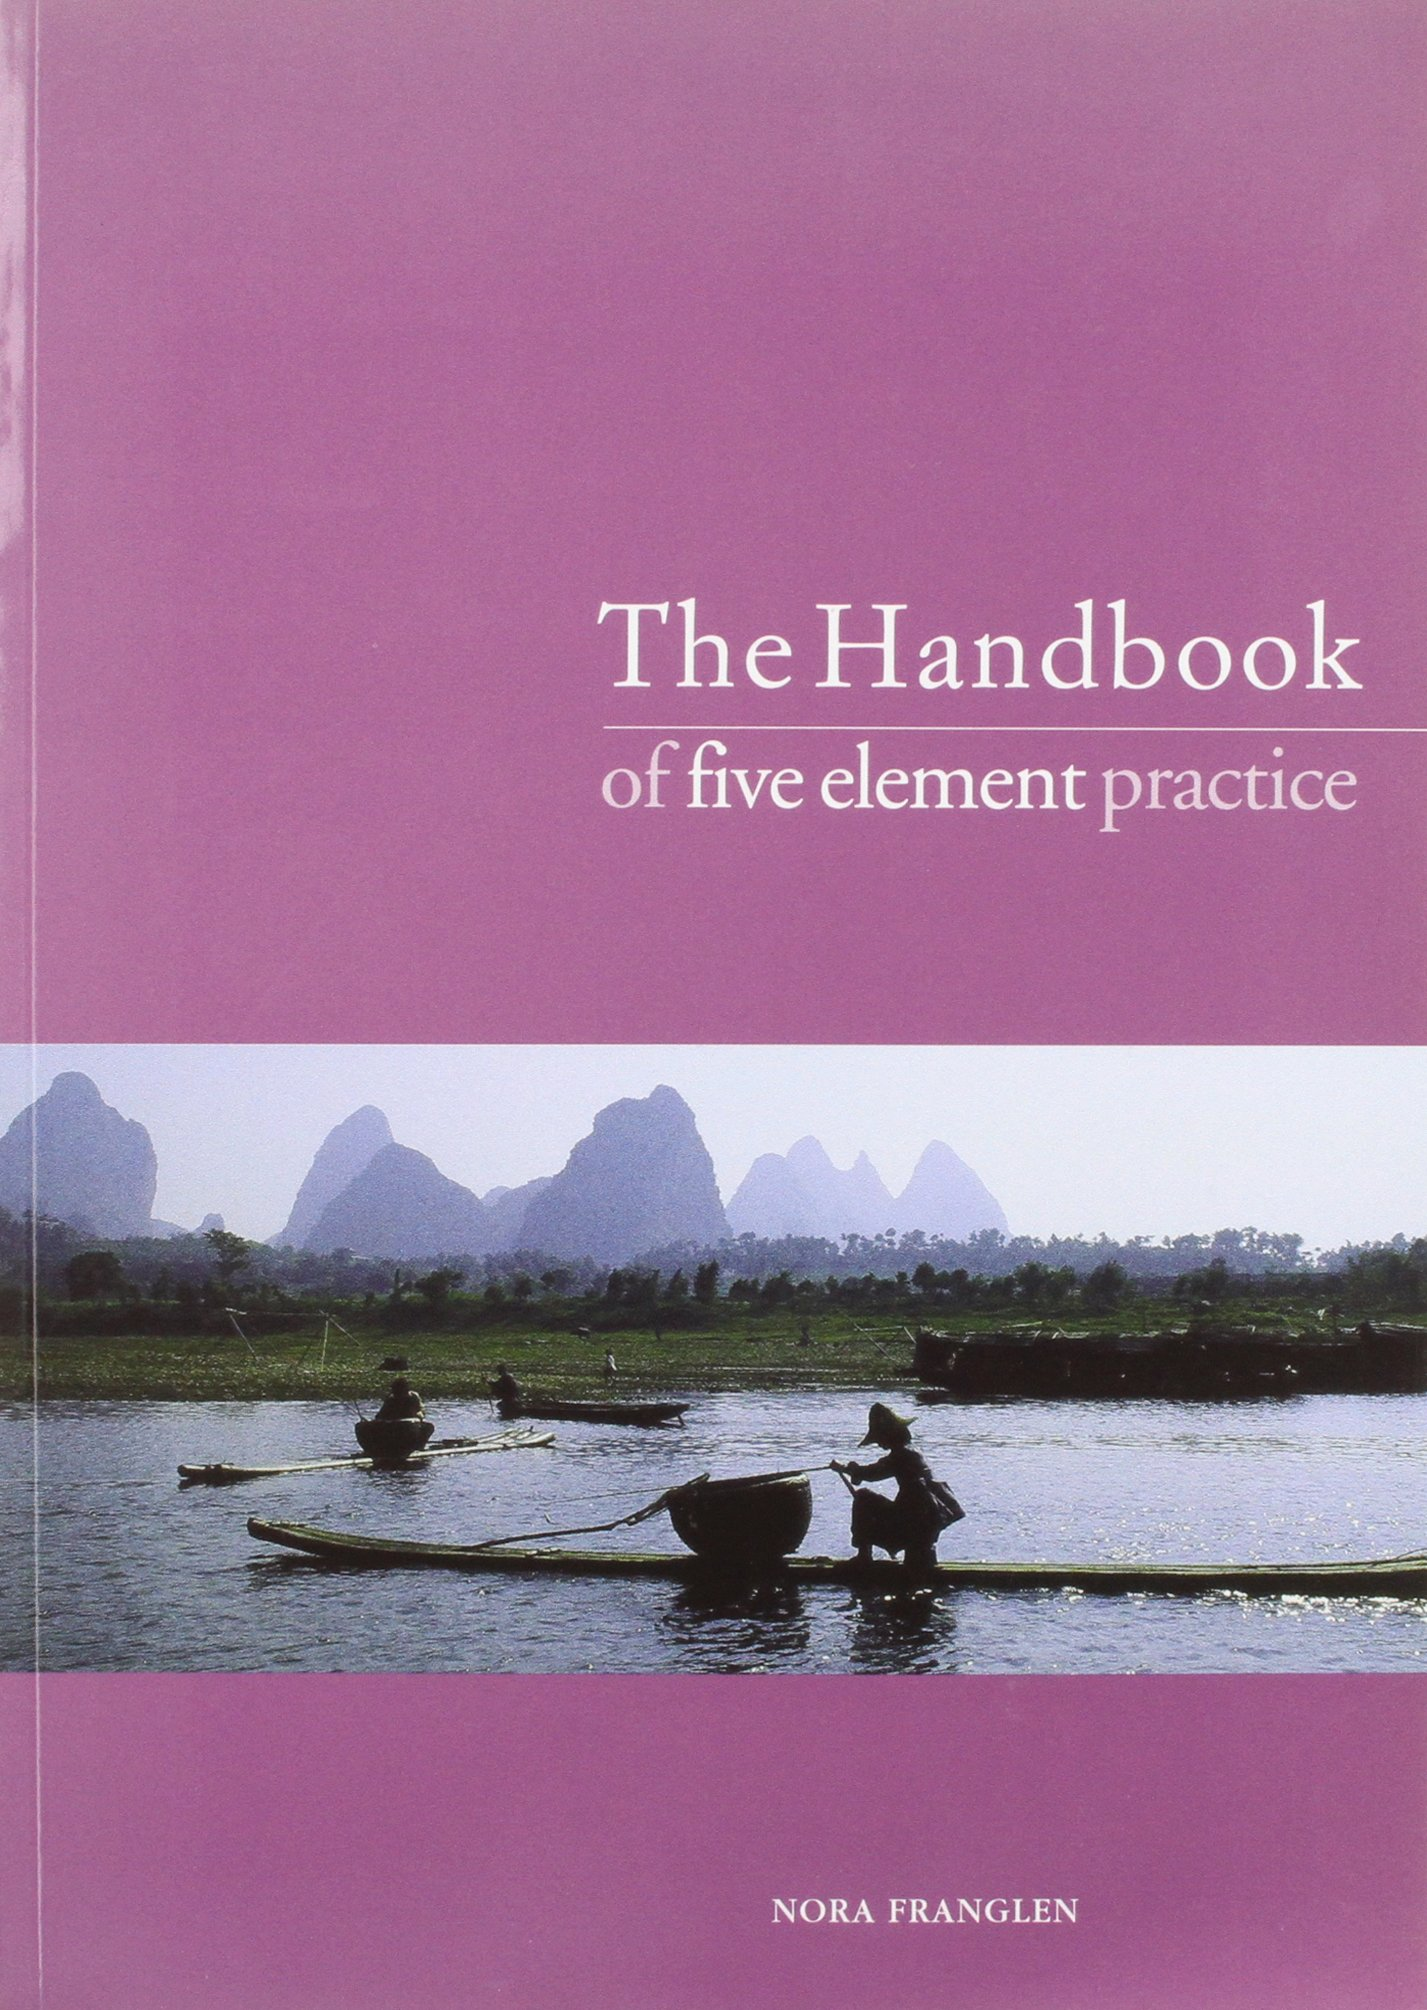 The Handbook of Five Element Practice: A Guide to the Practice of Five Element Acupuncture pdf epub